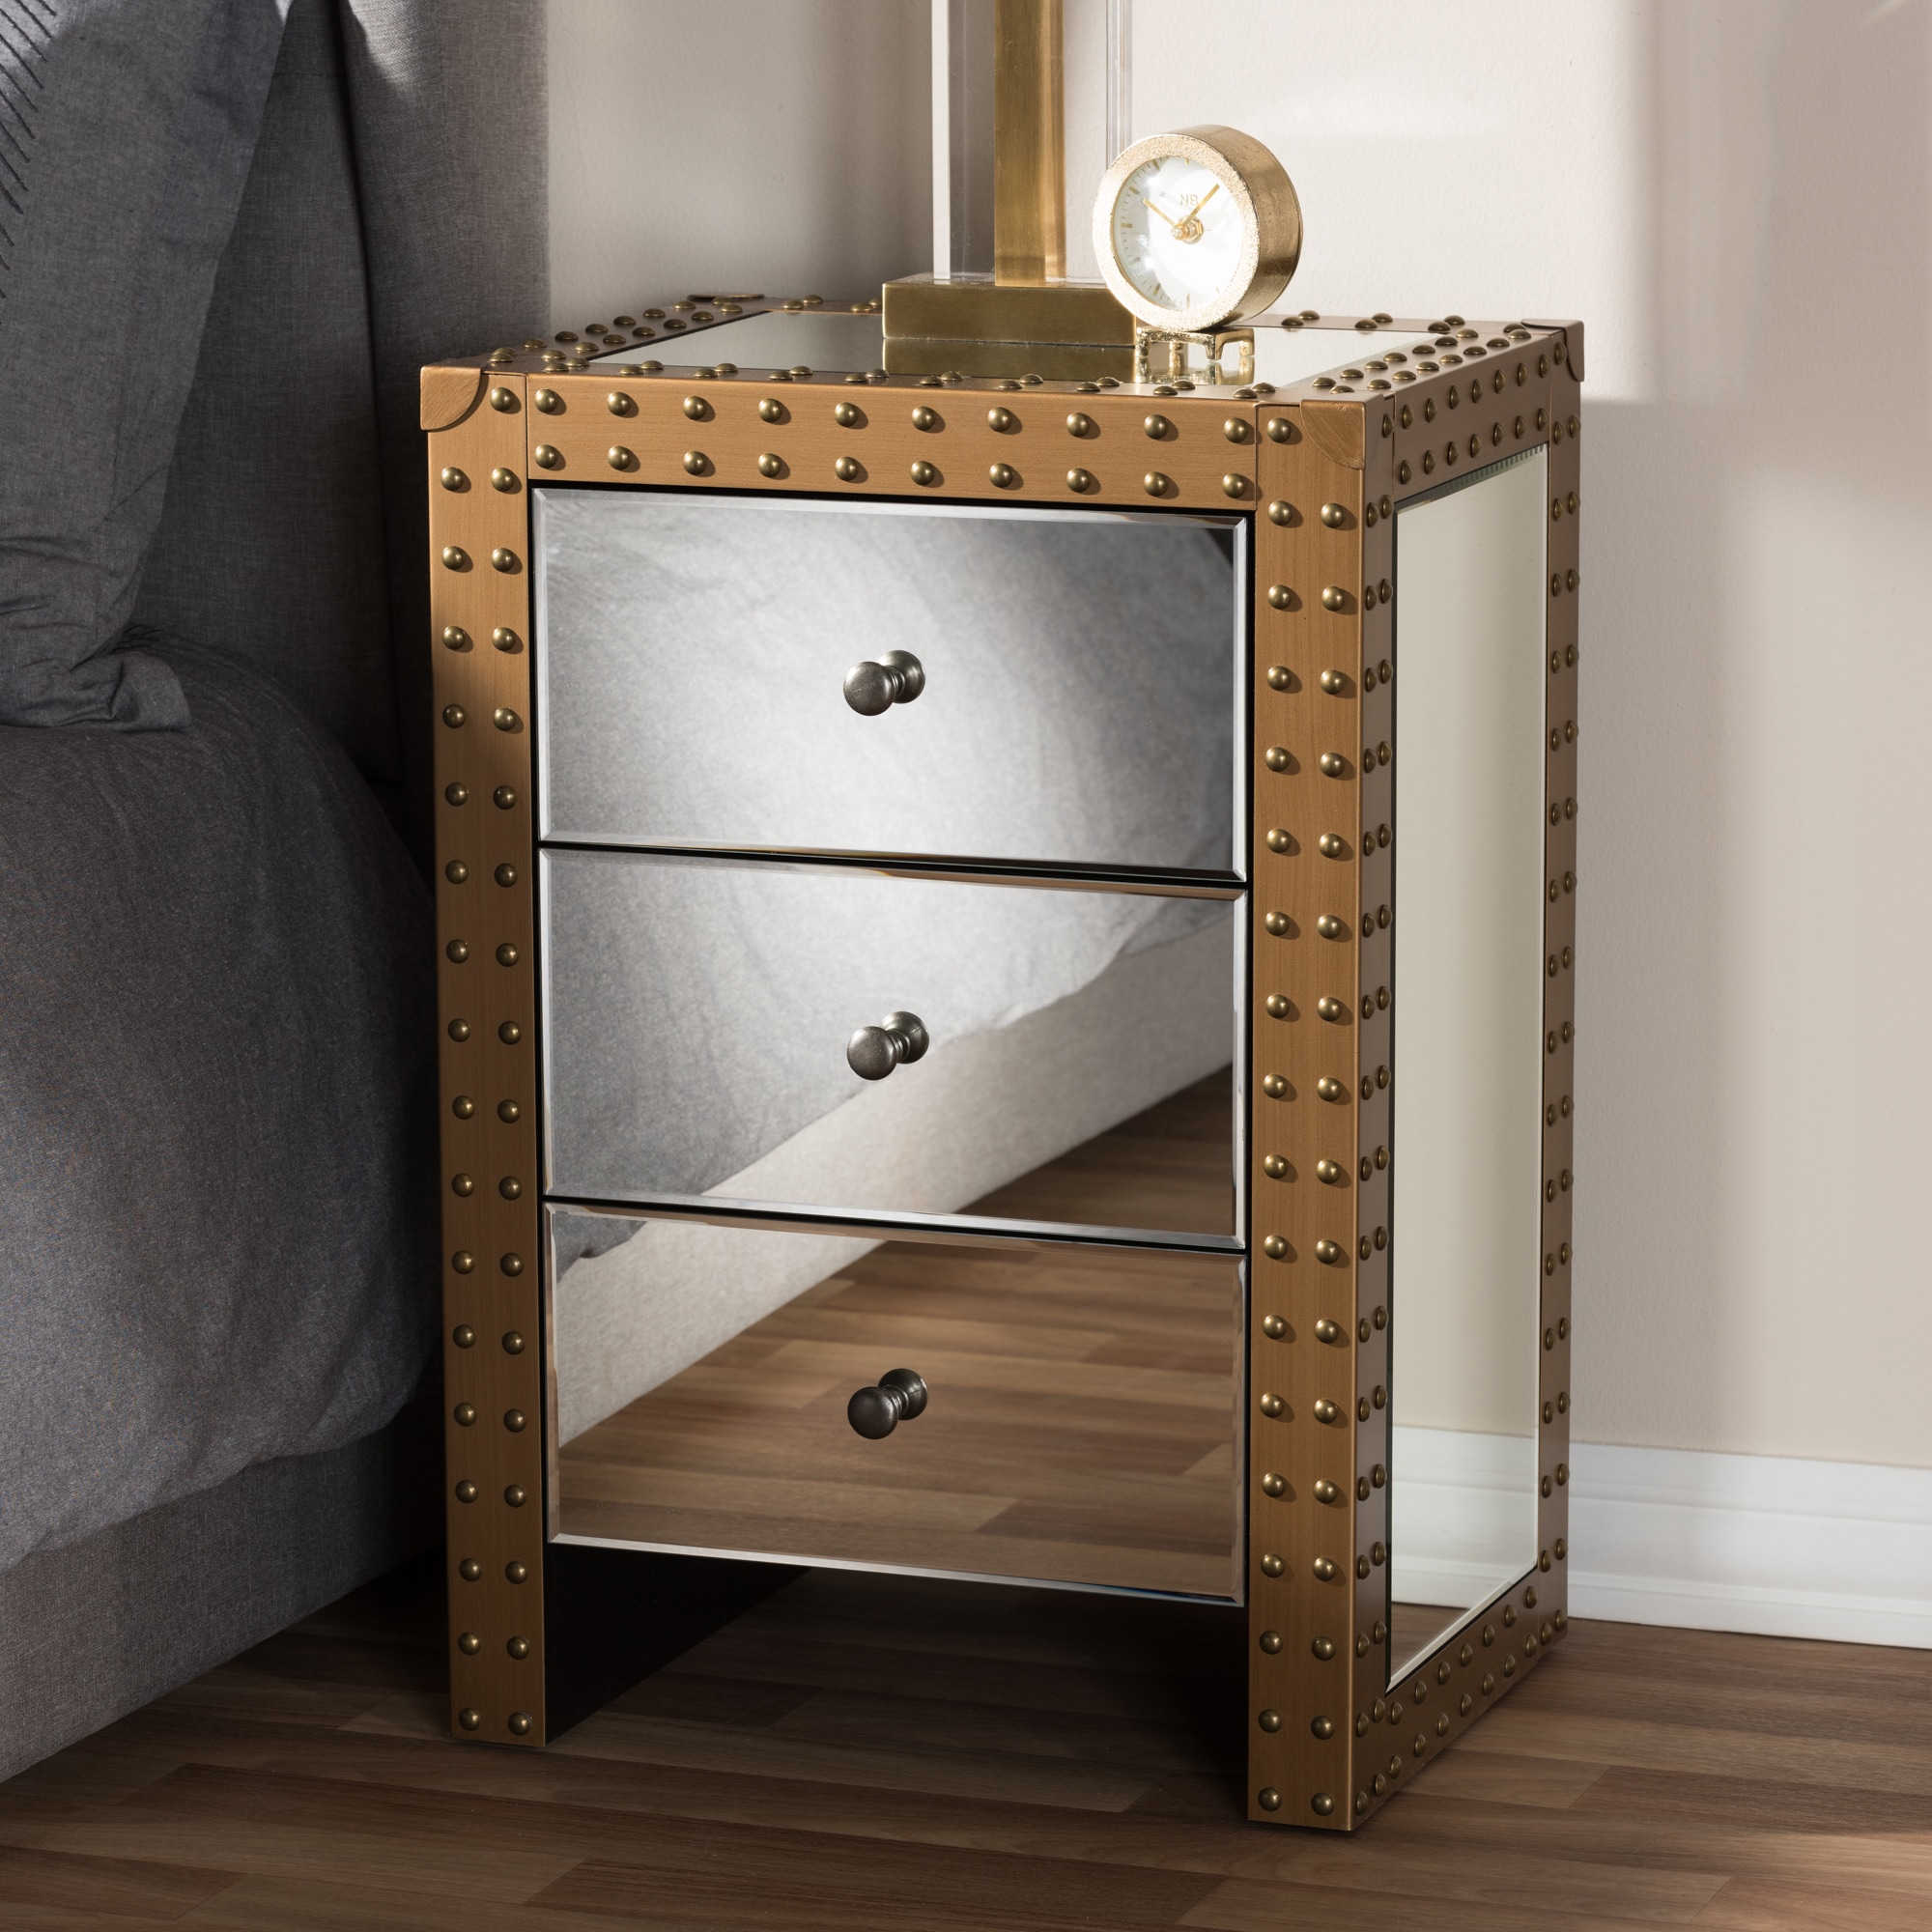 Rustic Industrial Style Mirrored Nightstand By Baxton Studio Overstock 15926234